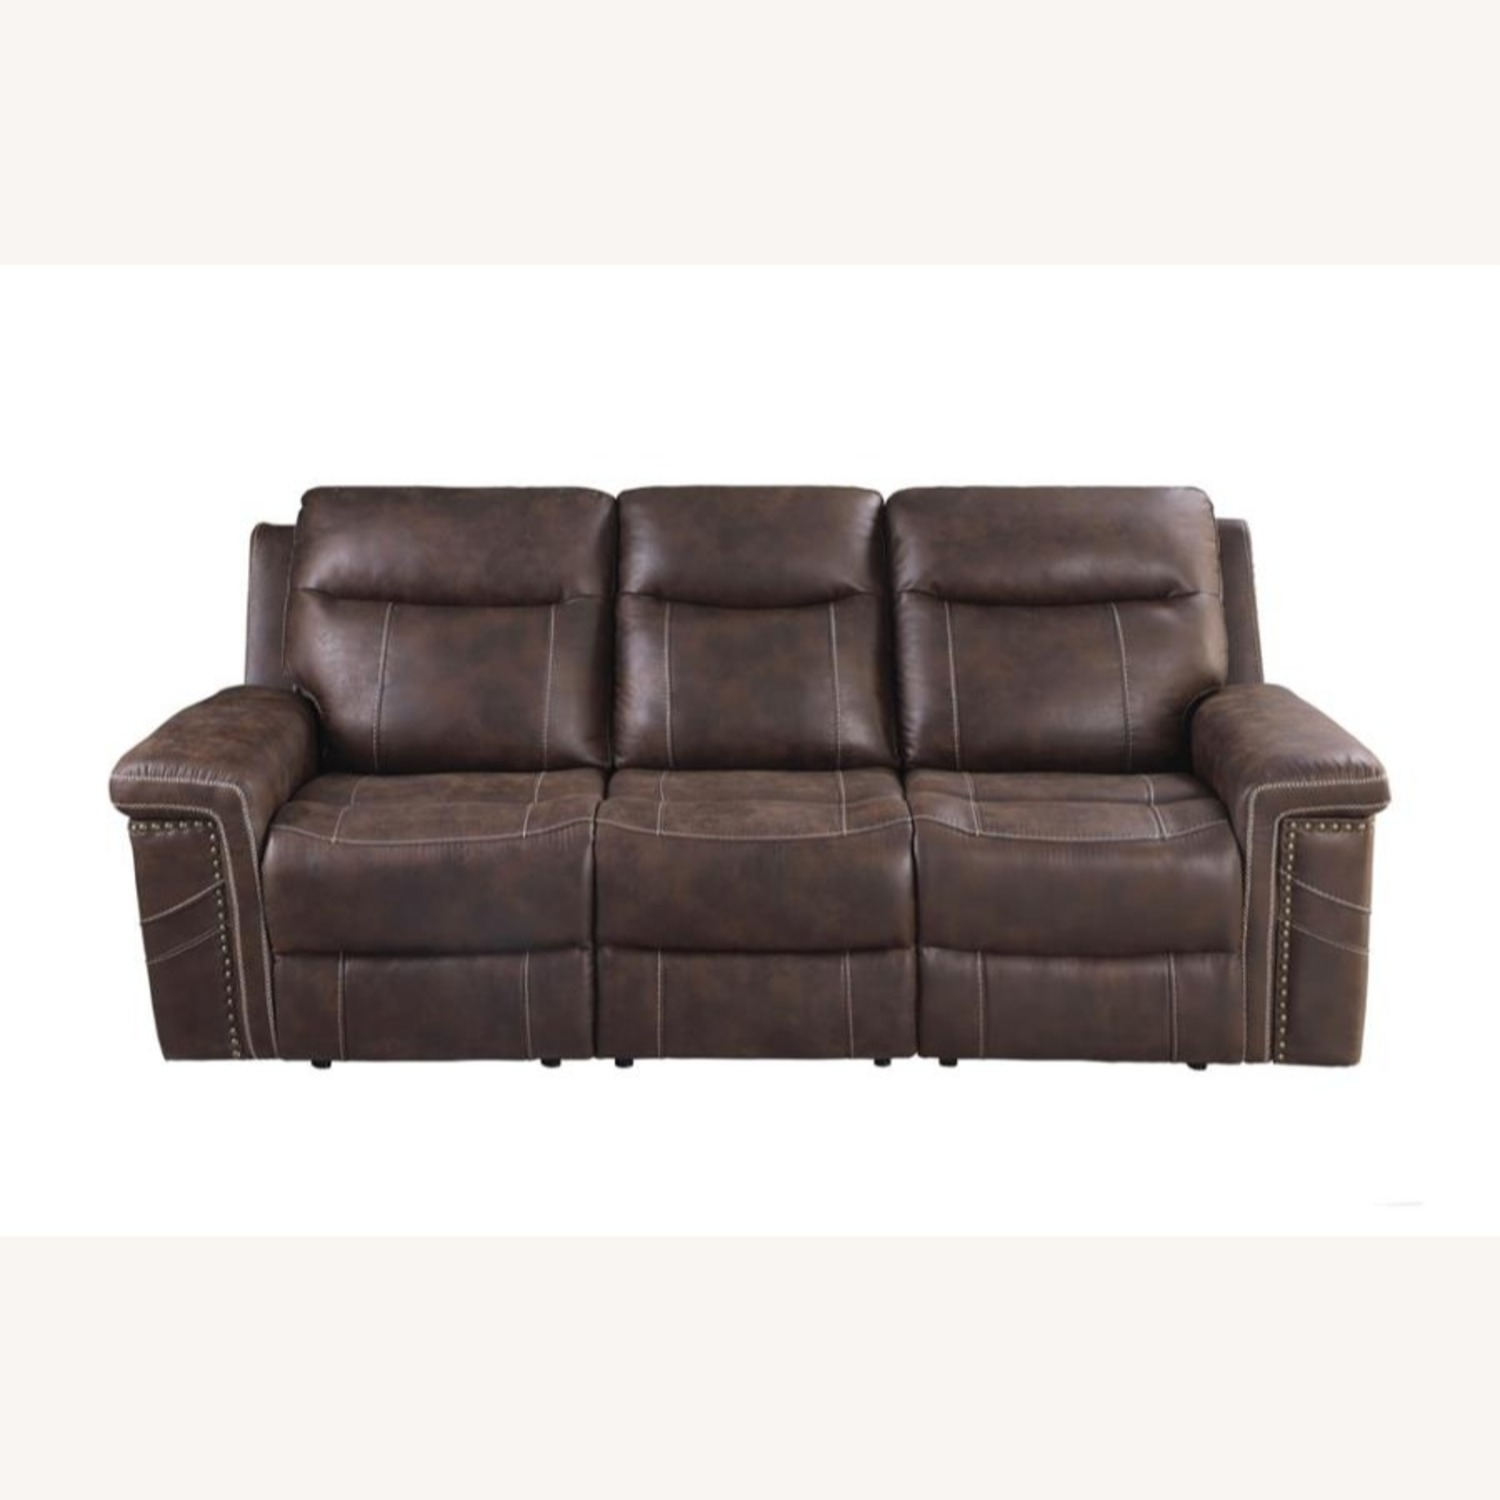 Power2 Sofa In Rich Brown Faux Suede - image-2